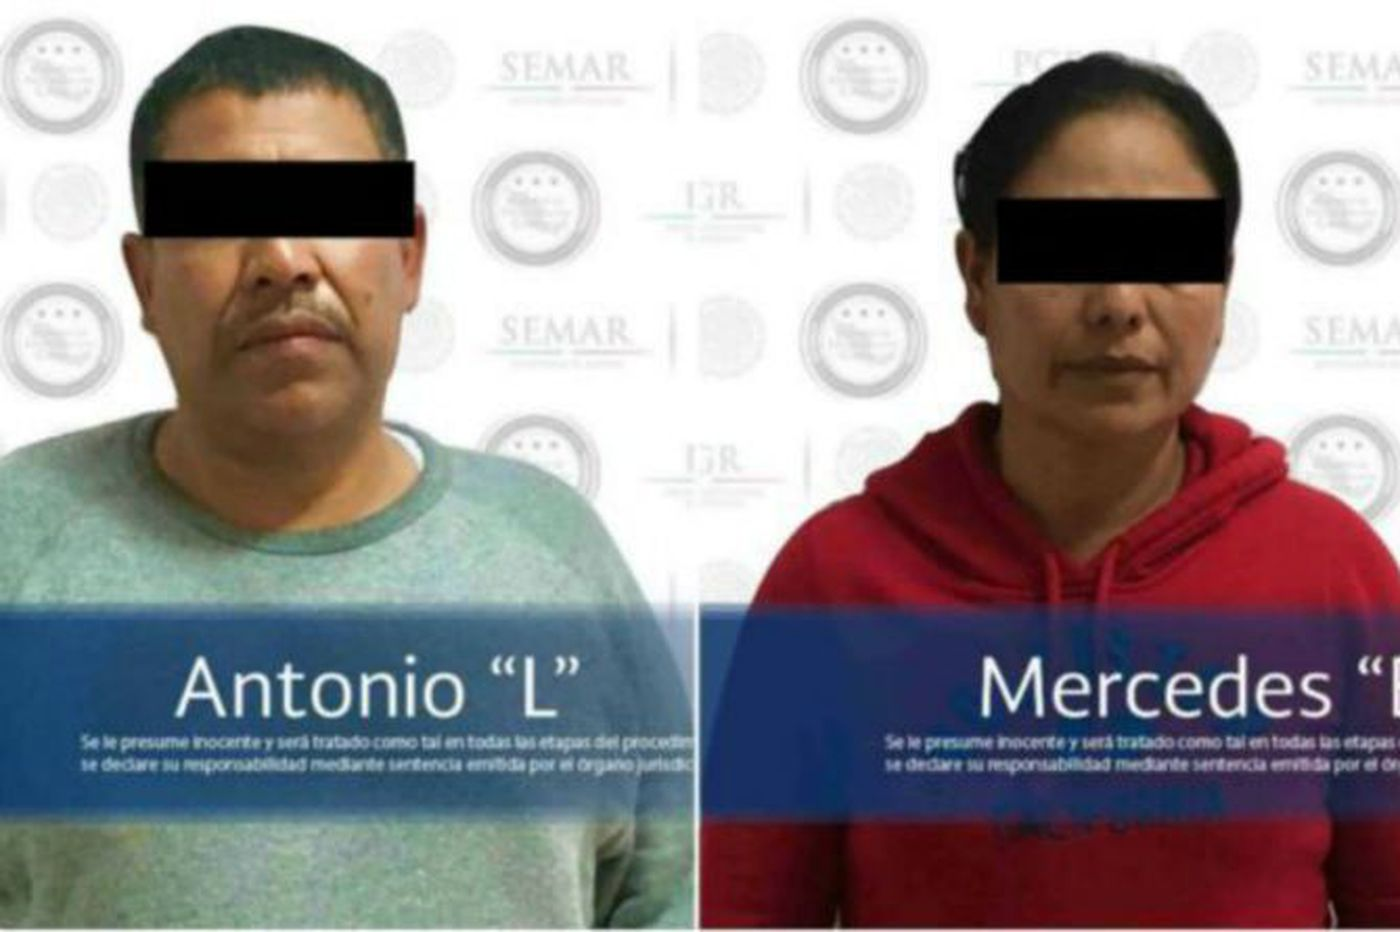 Reputed Mexican drug kingpin, wife extradited to stand trial in Philadelphia